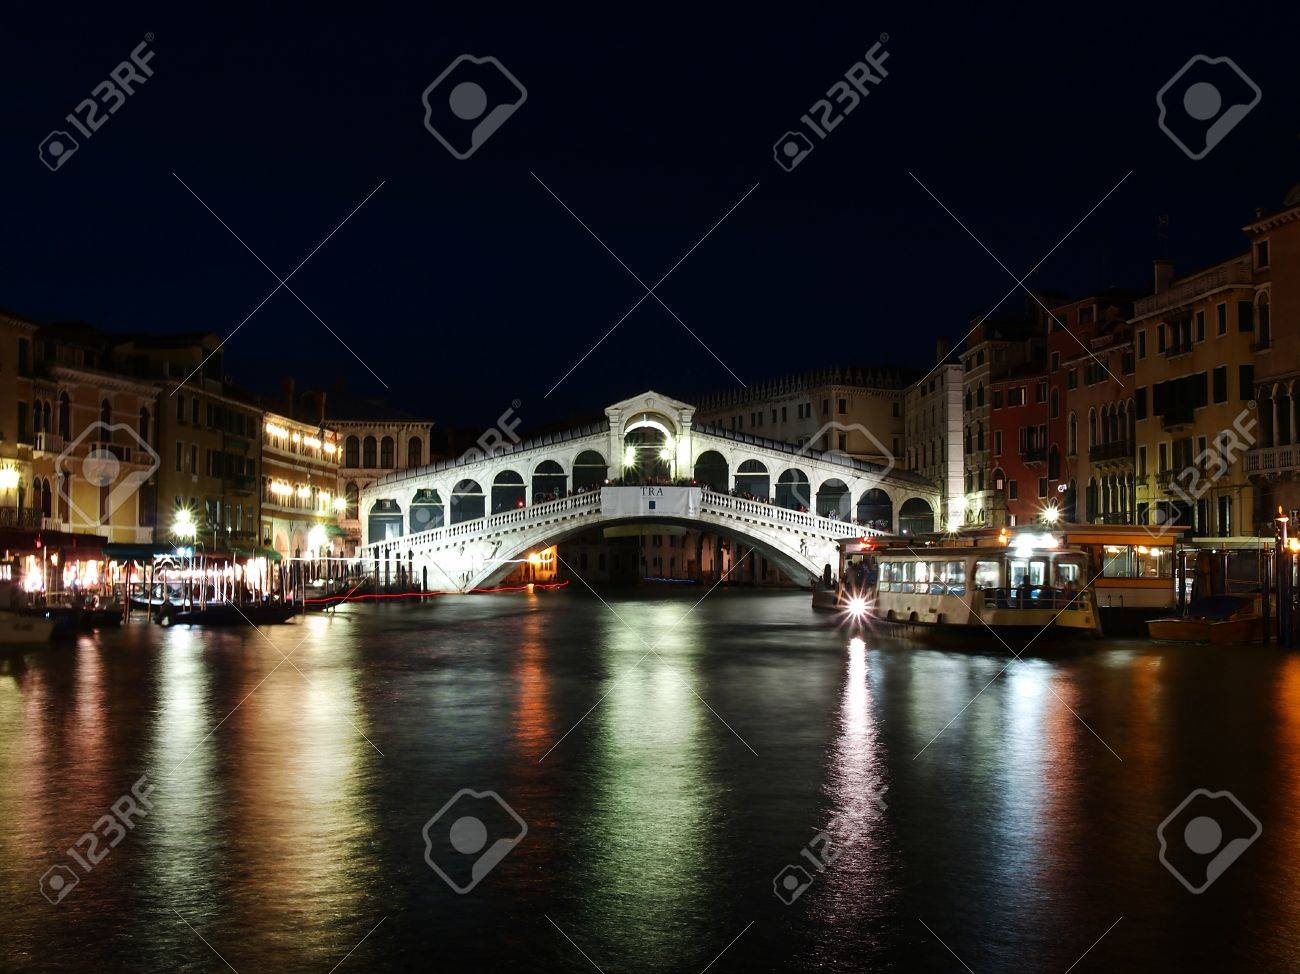 VENICE, ITALY - JULY 02: Tourist enjoy day and night on the Rialto Bridge on July 02, 2011 in Venice, Italy. Originally built out of wood and having collapsed, in 1591 was completed out of stone.  Stock Photo - 12790056